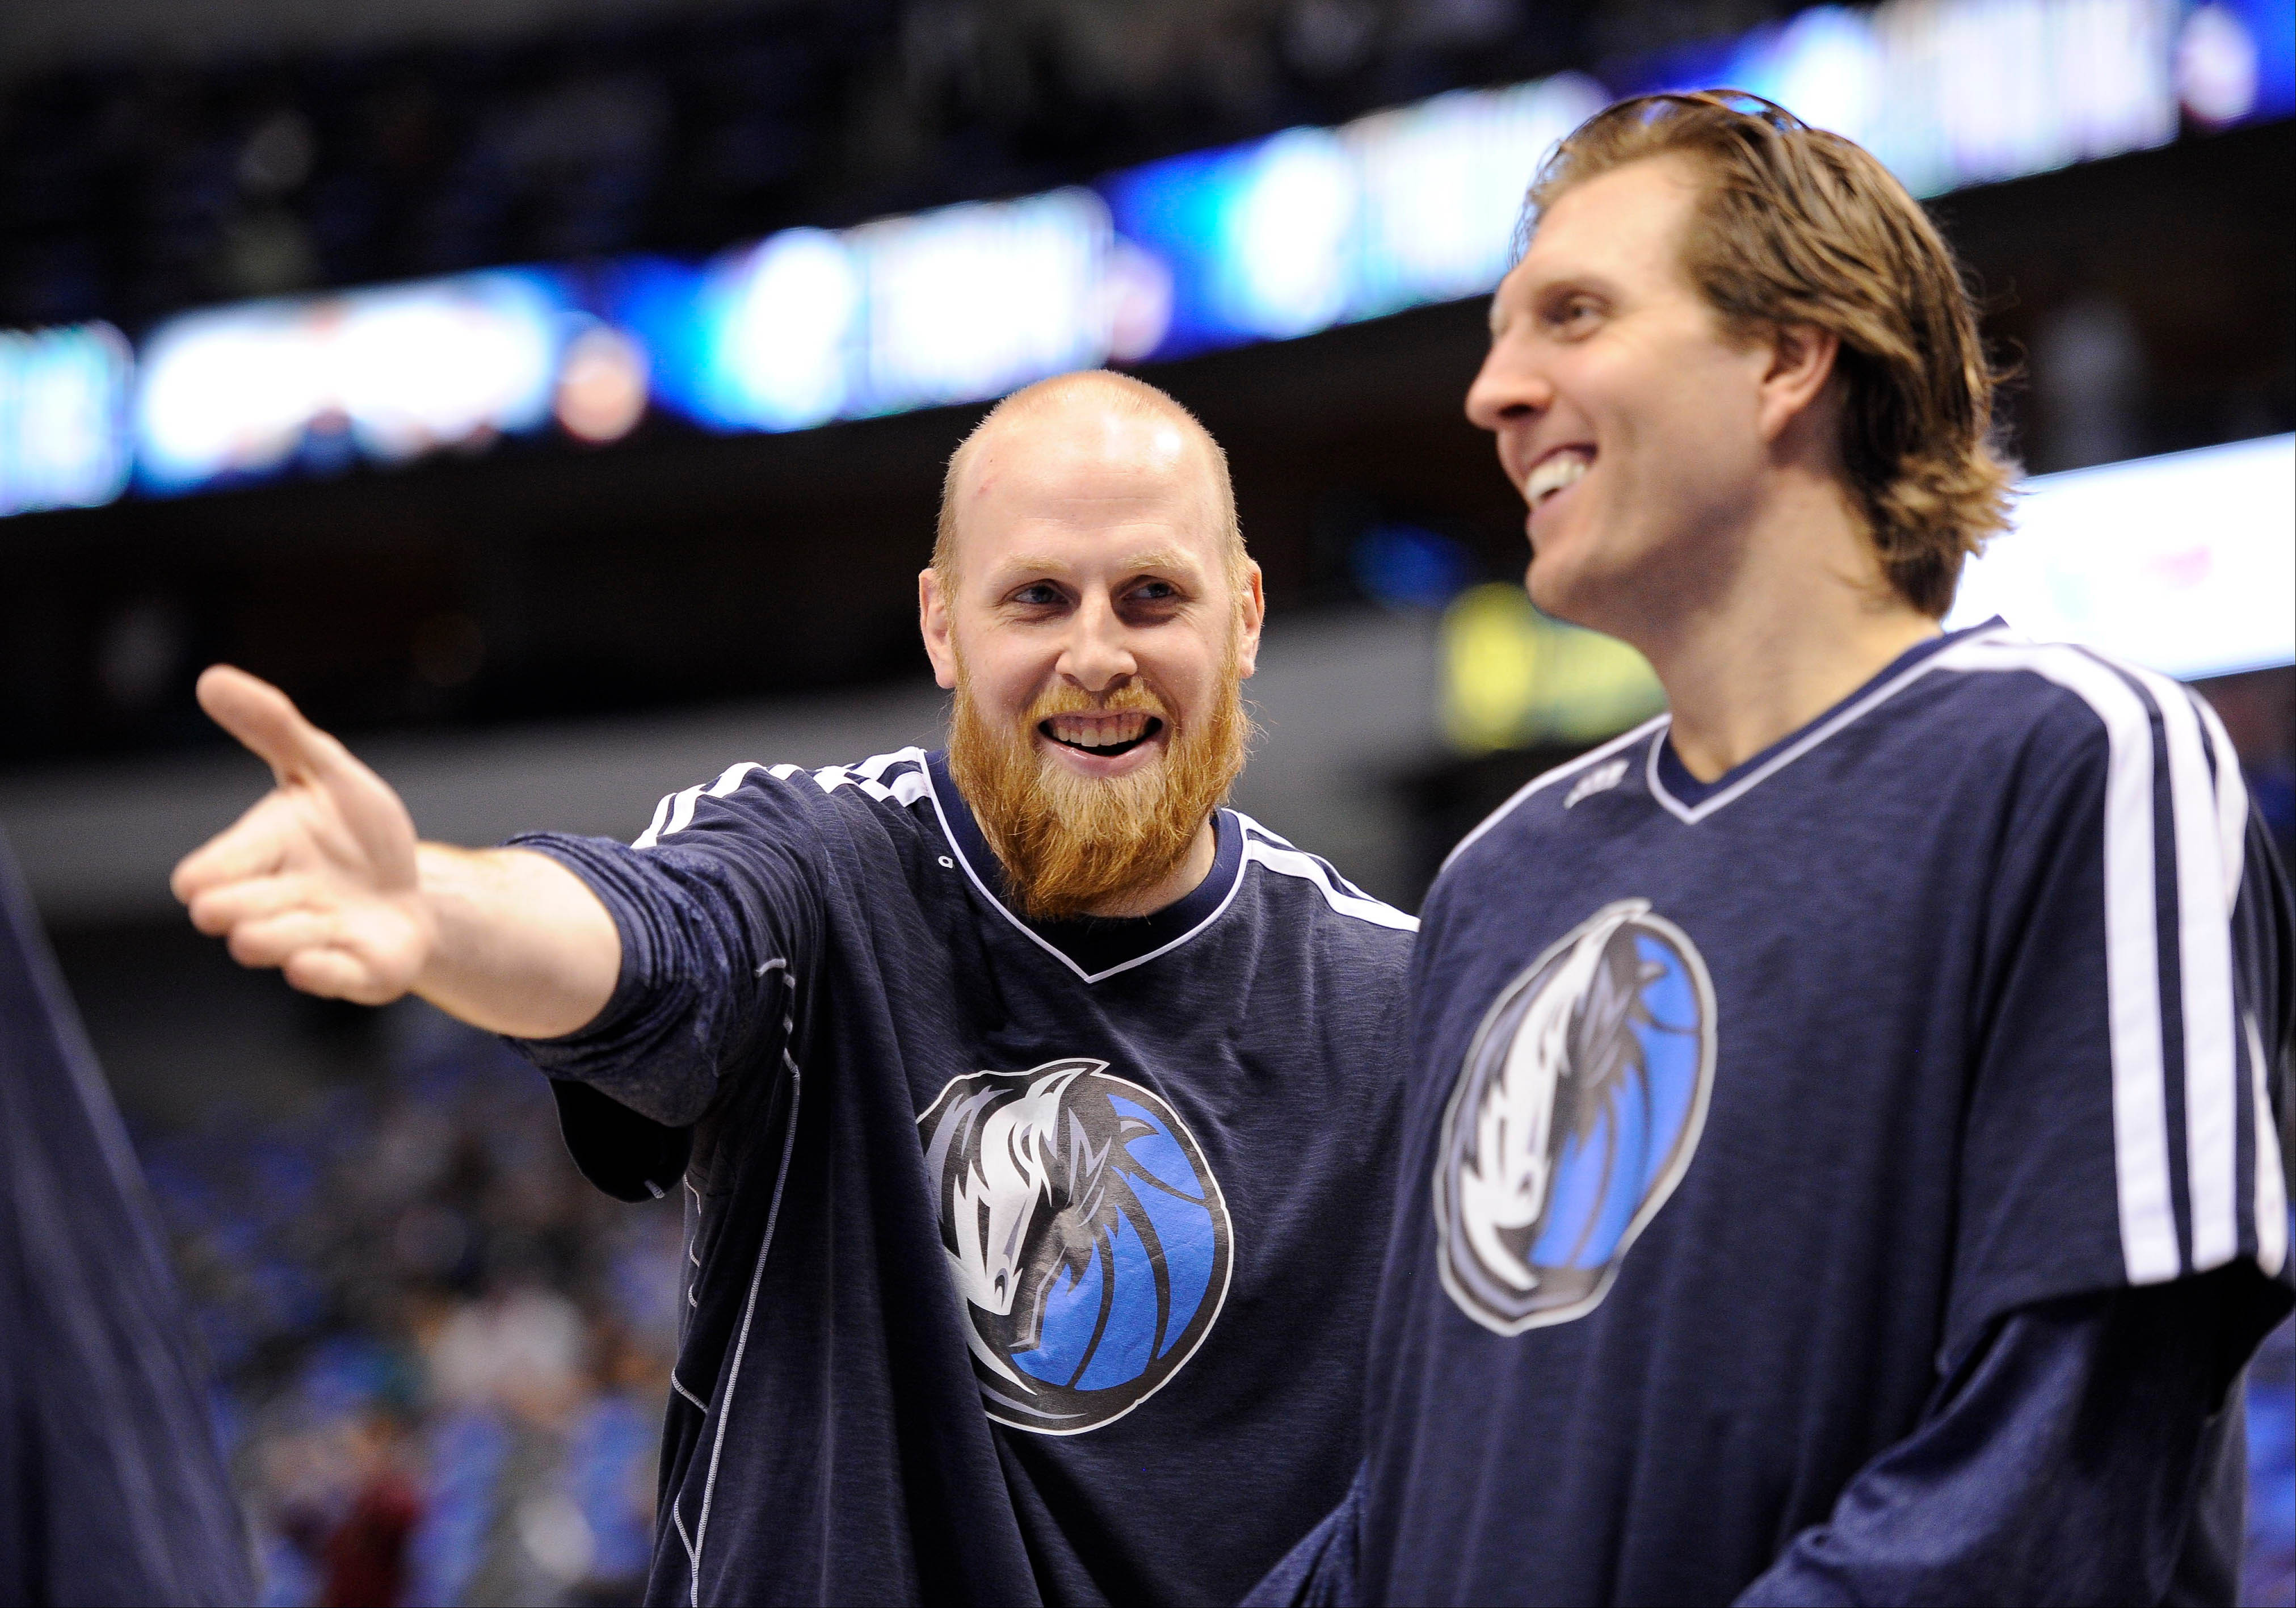 Chris Kaman (L) is shown with Dirk Nowitzki. (USA Today)